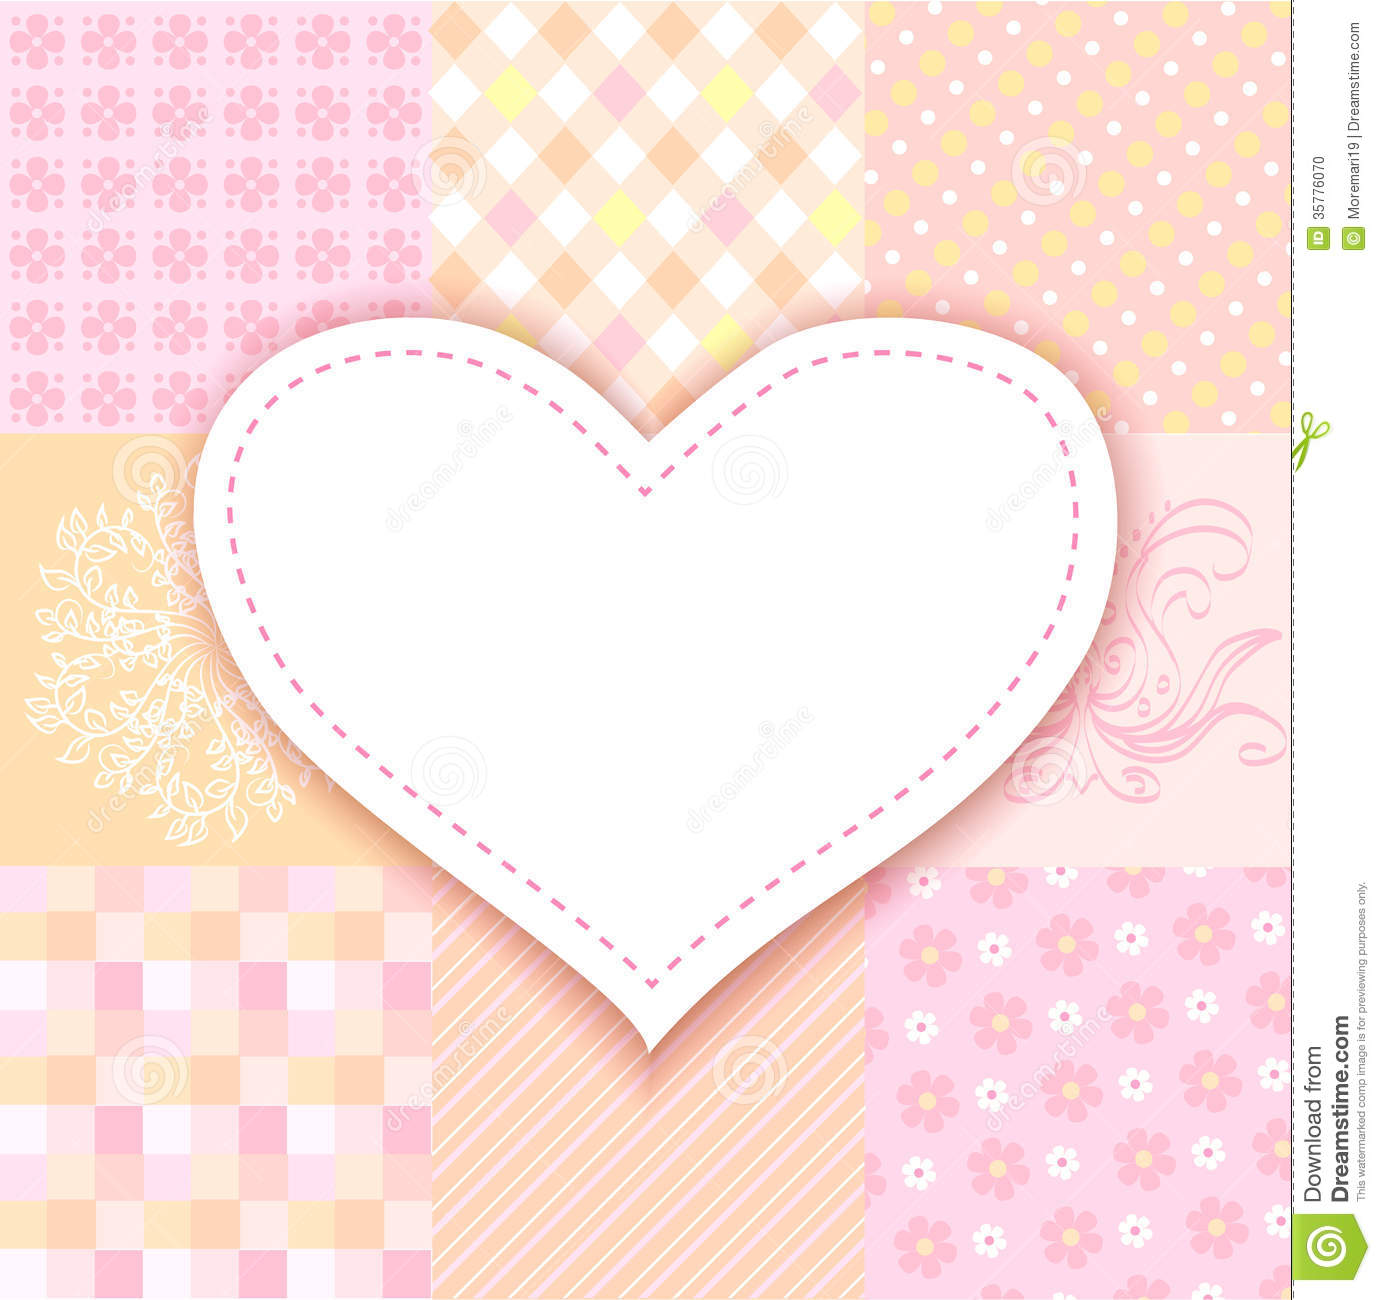 Cute Pattern Wallpaper Free White Heart Romantic Background Patchwork Stock Vector